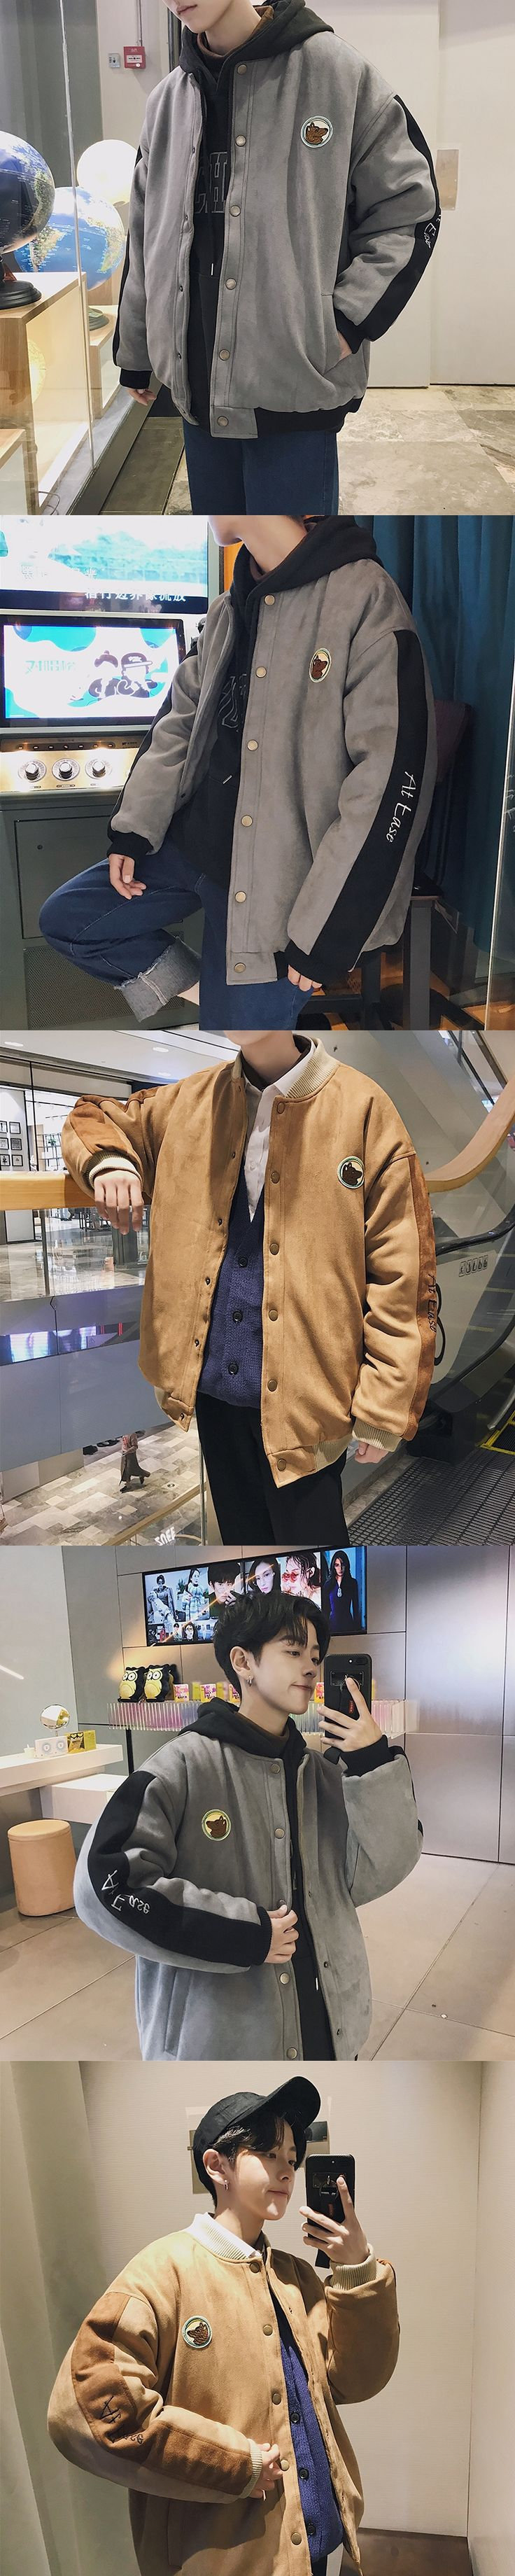 2017 Winter New Men's Korean Style Tide Deerskin Embroidery Labeling Cotton-padded Clothes Warm Casual 2 Color Jacket Coat M-2XL